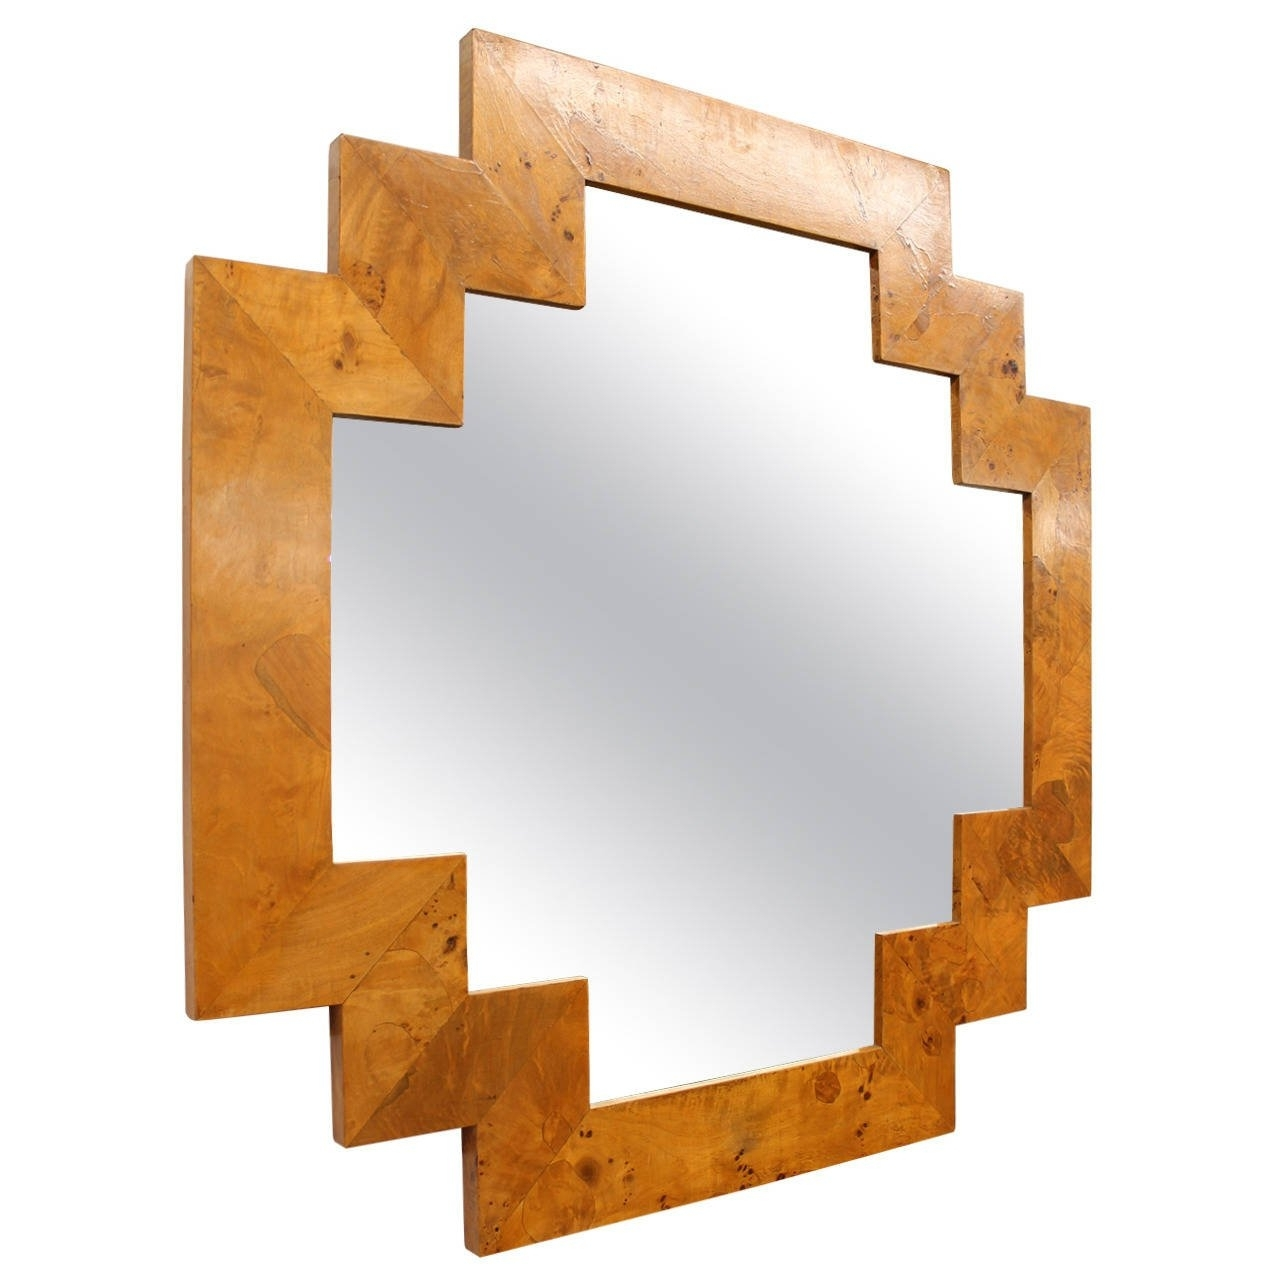 Italian Wood Wall Art With Fashionable Art Deco Style Geometric Italian Burl Wood Wall Mirror At 1Stdibs (View 6 of 15)